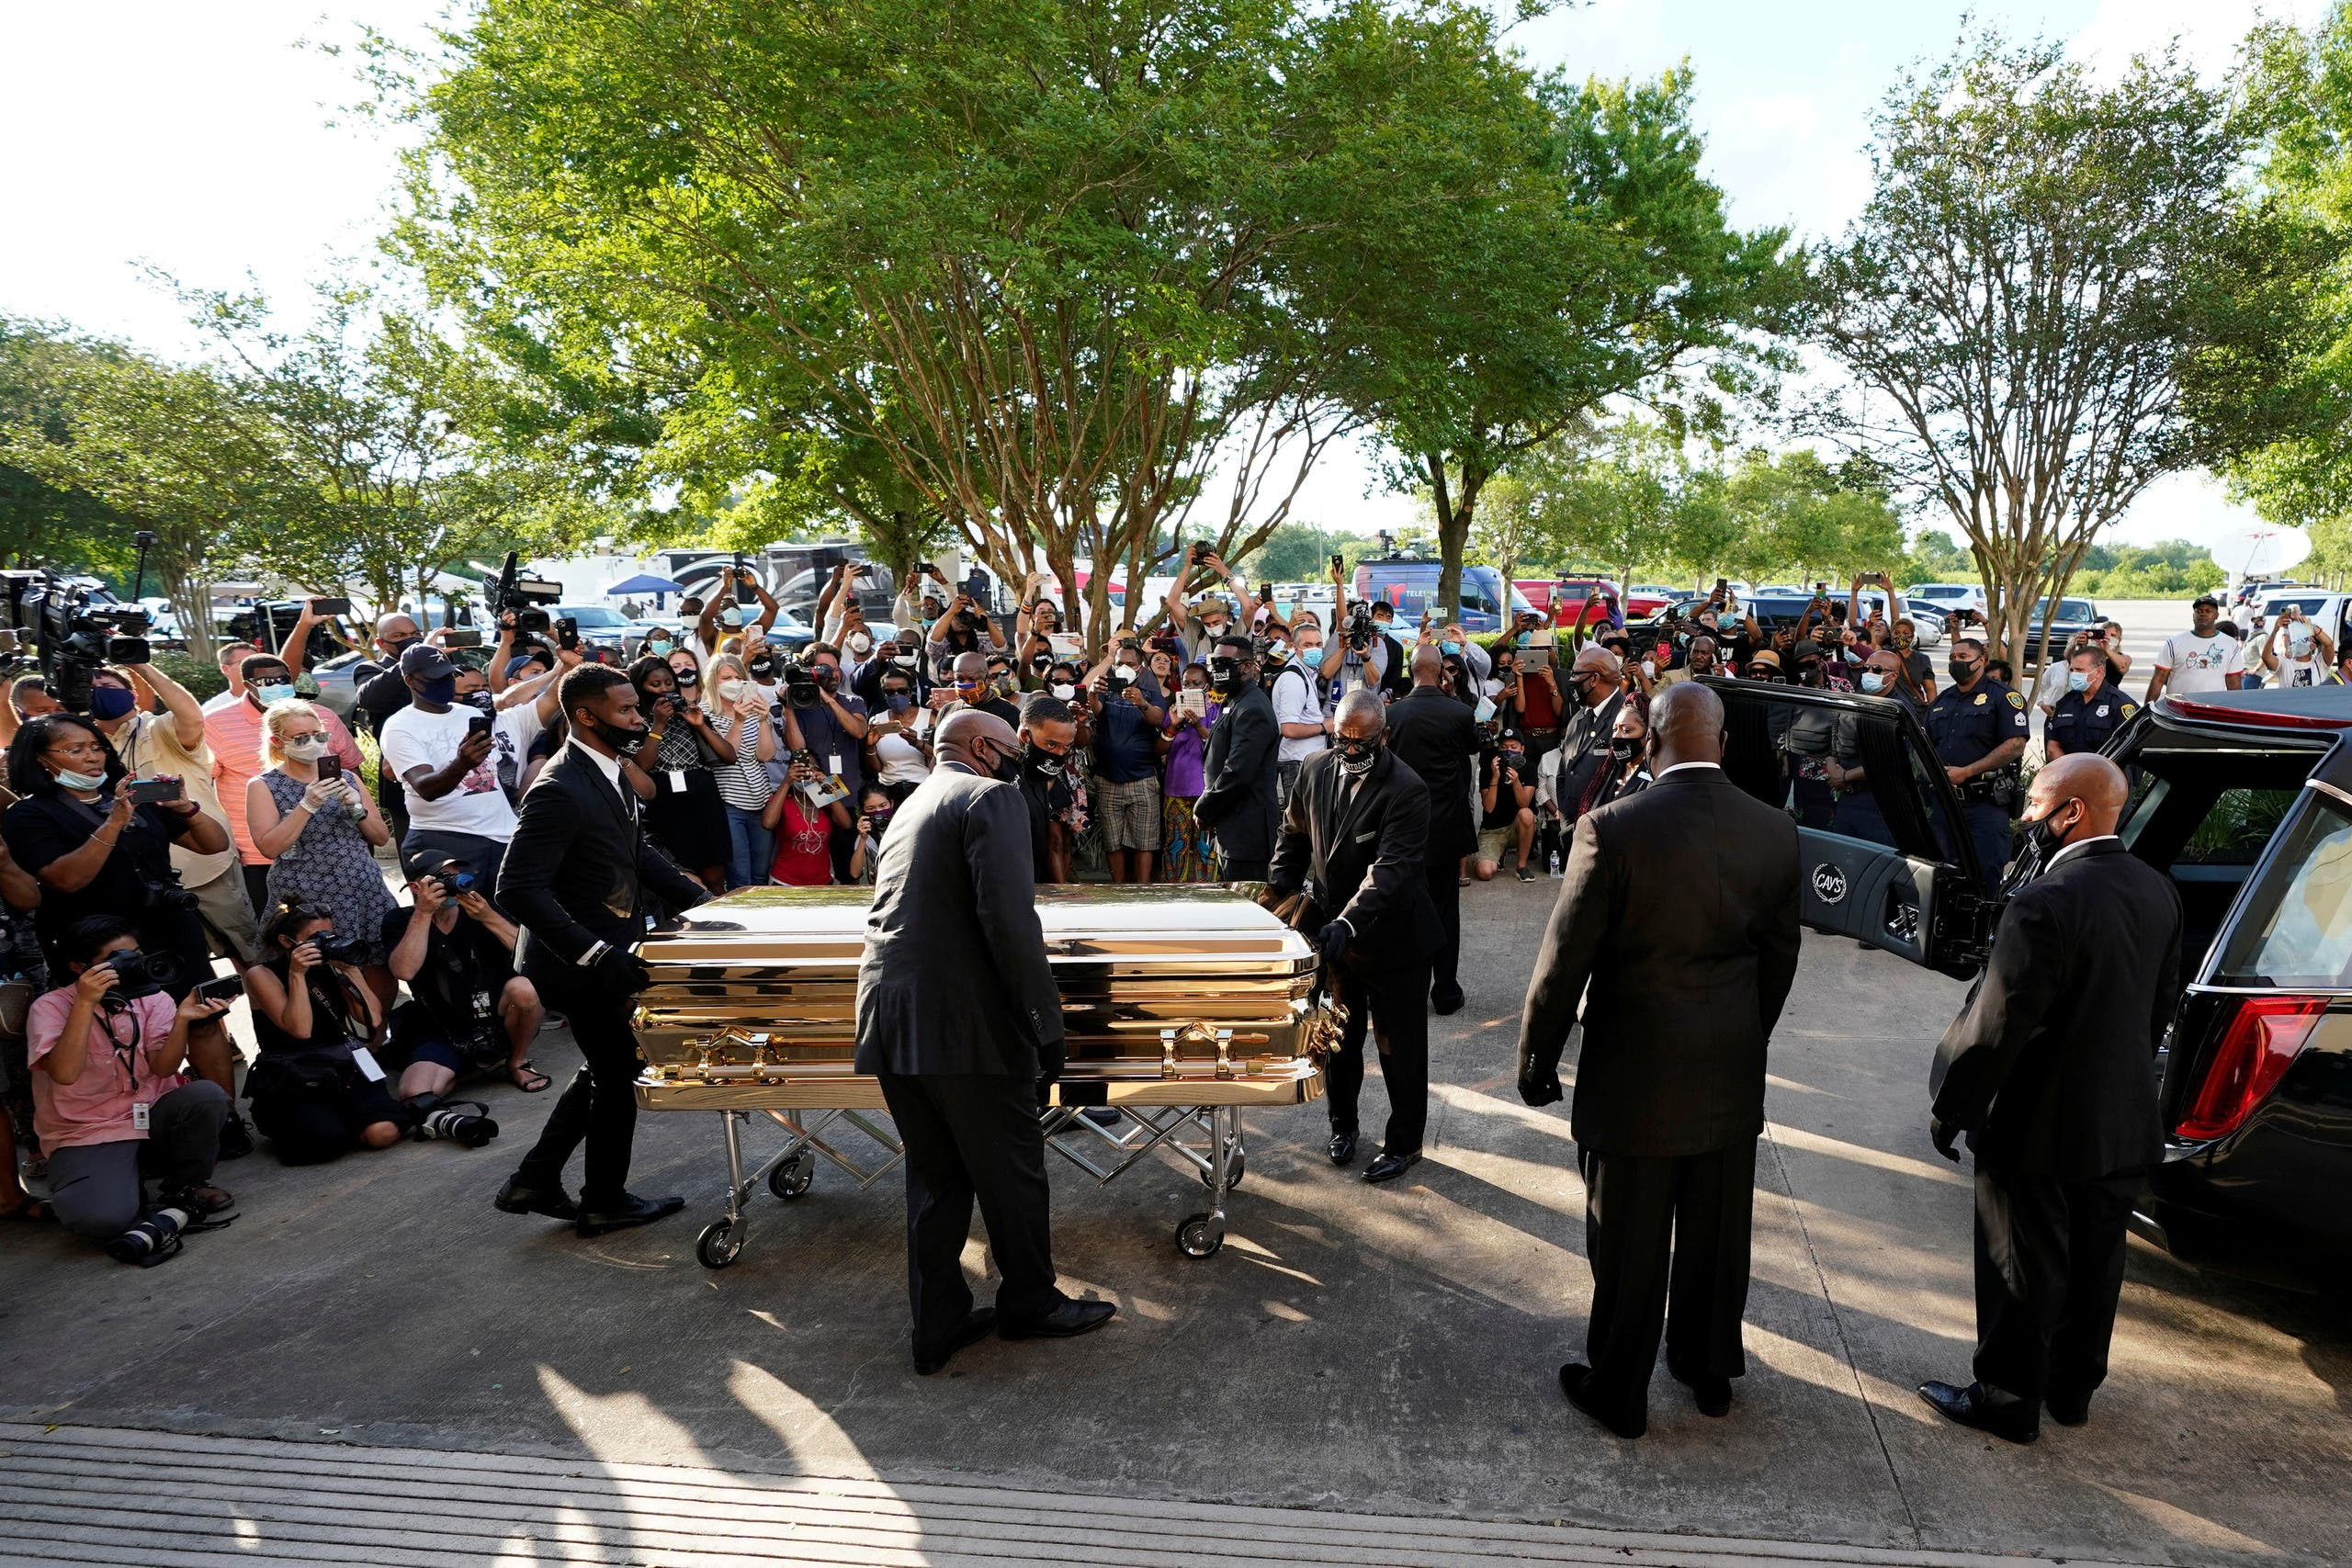 The casket of George Floyd is removed after a public visitation for Floyd at the Fountain of Praise church, Monday, June 8, 2020, in Houston, U.S. (Reuters)